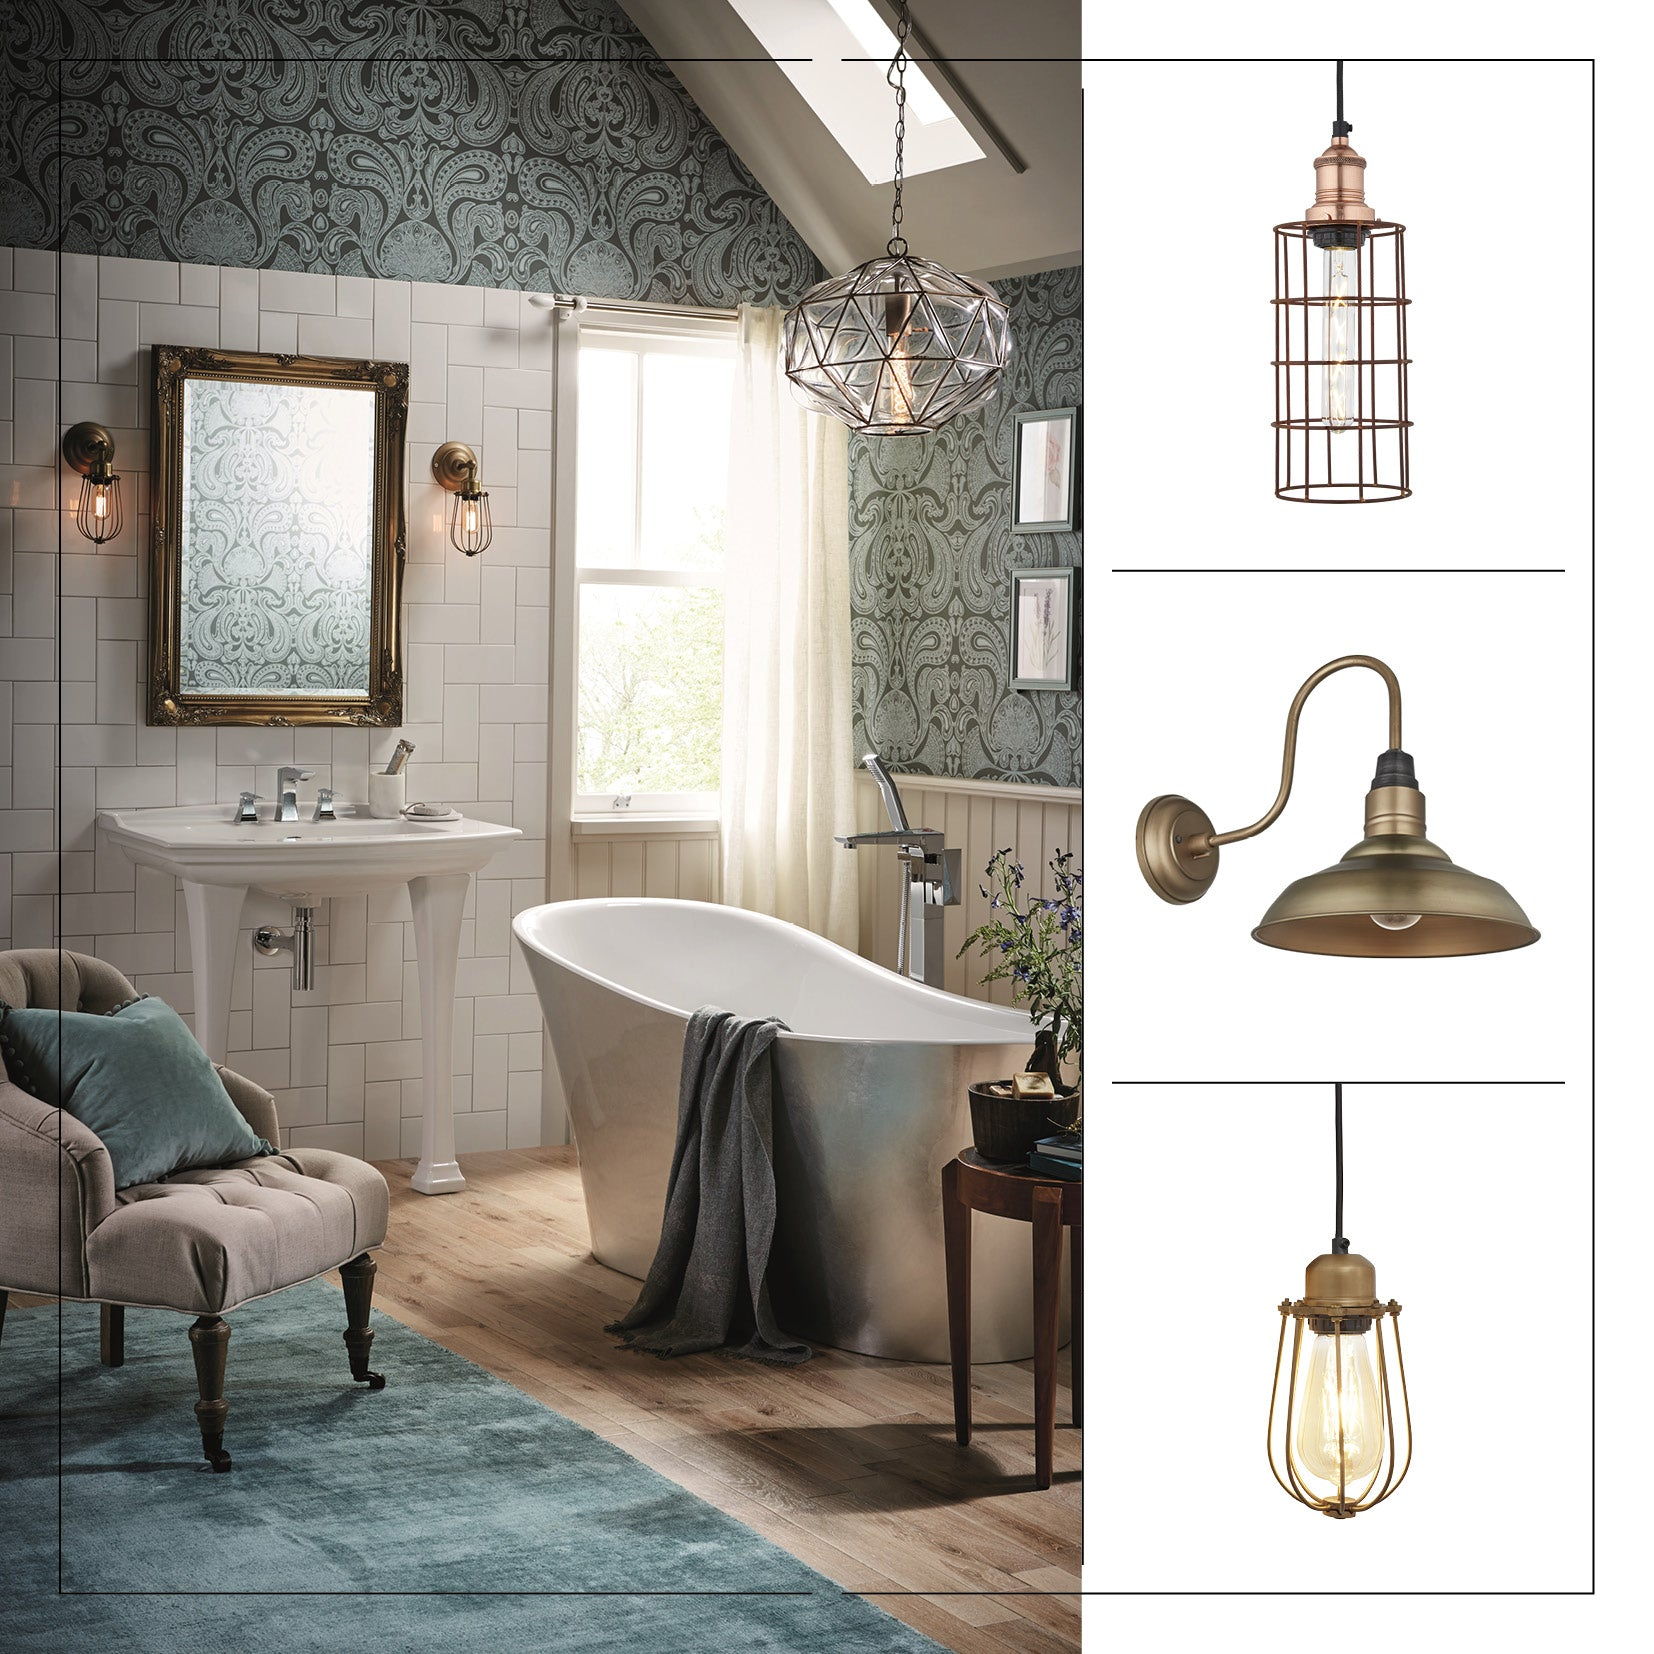 Industrial lights in a chic bathroom